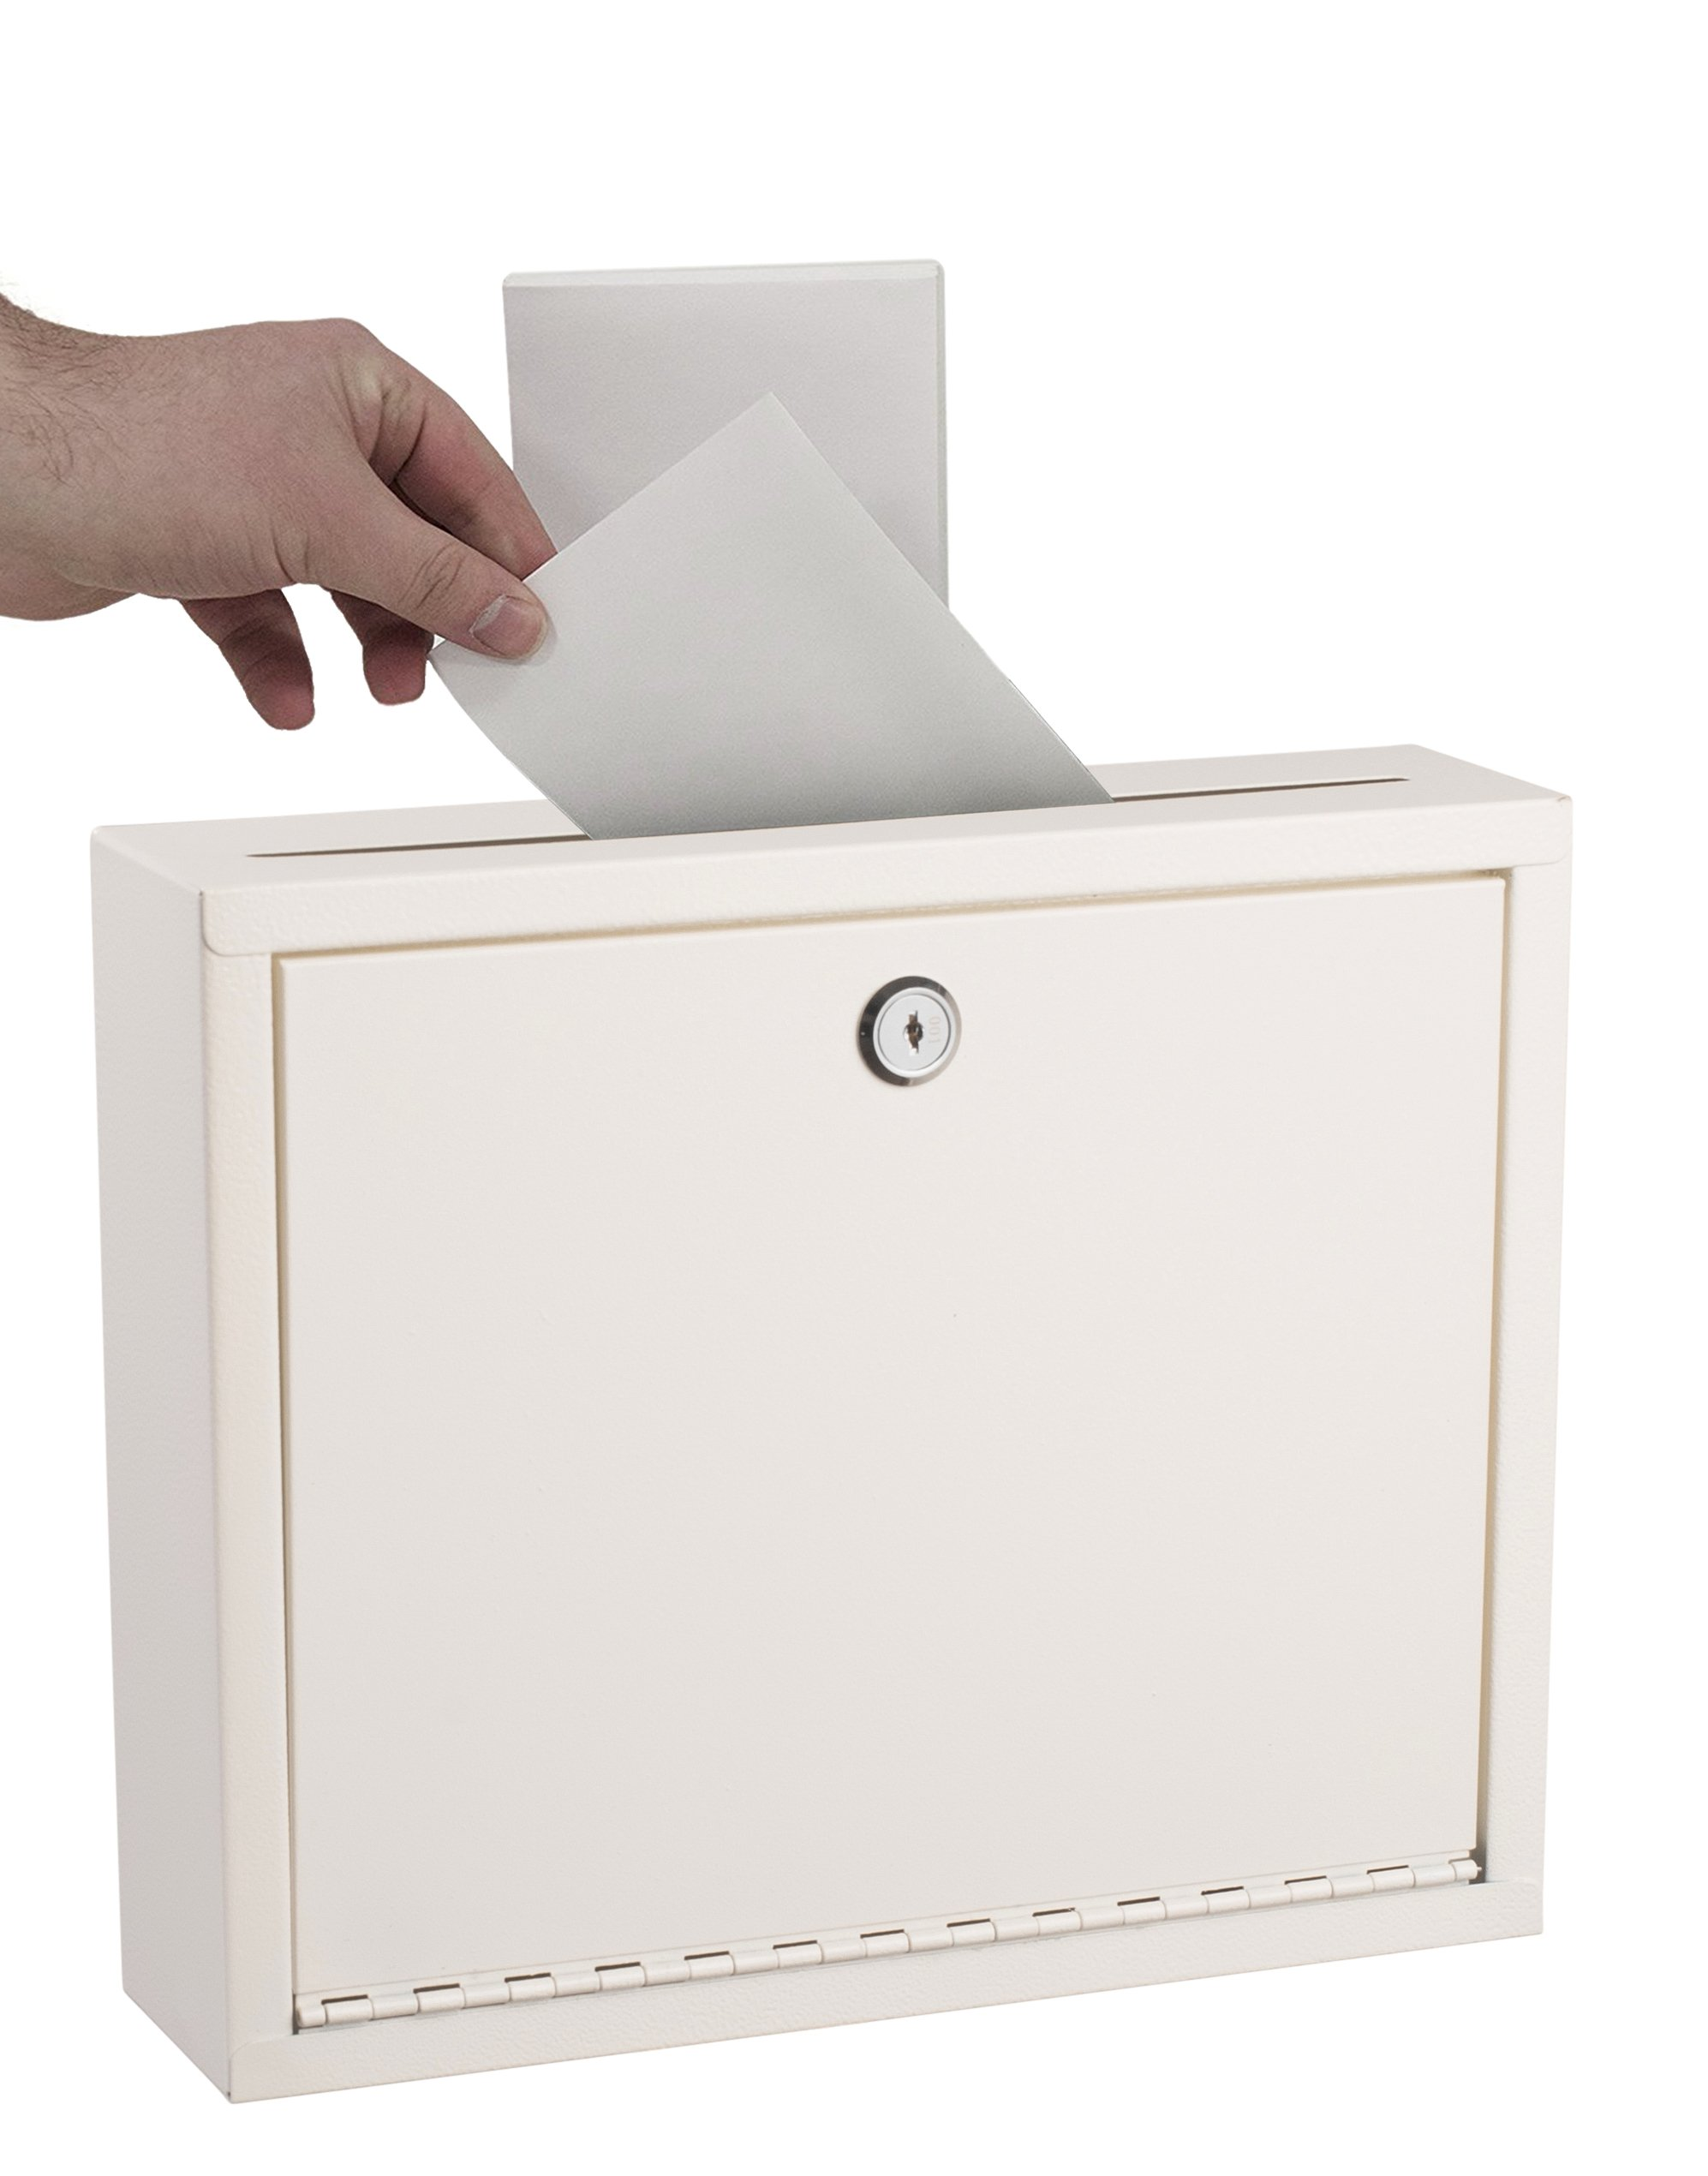 Adir Corp. Multi Purpose Large Size Suggestion Box (White)